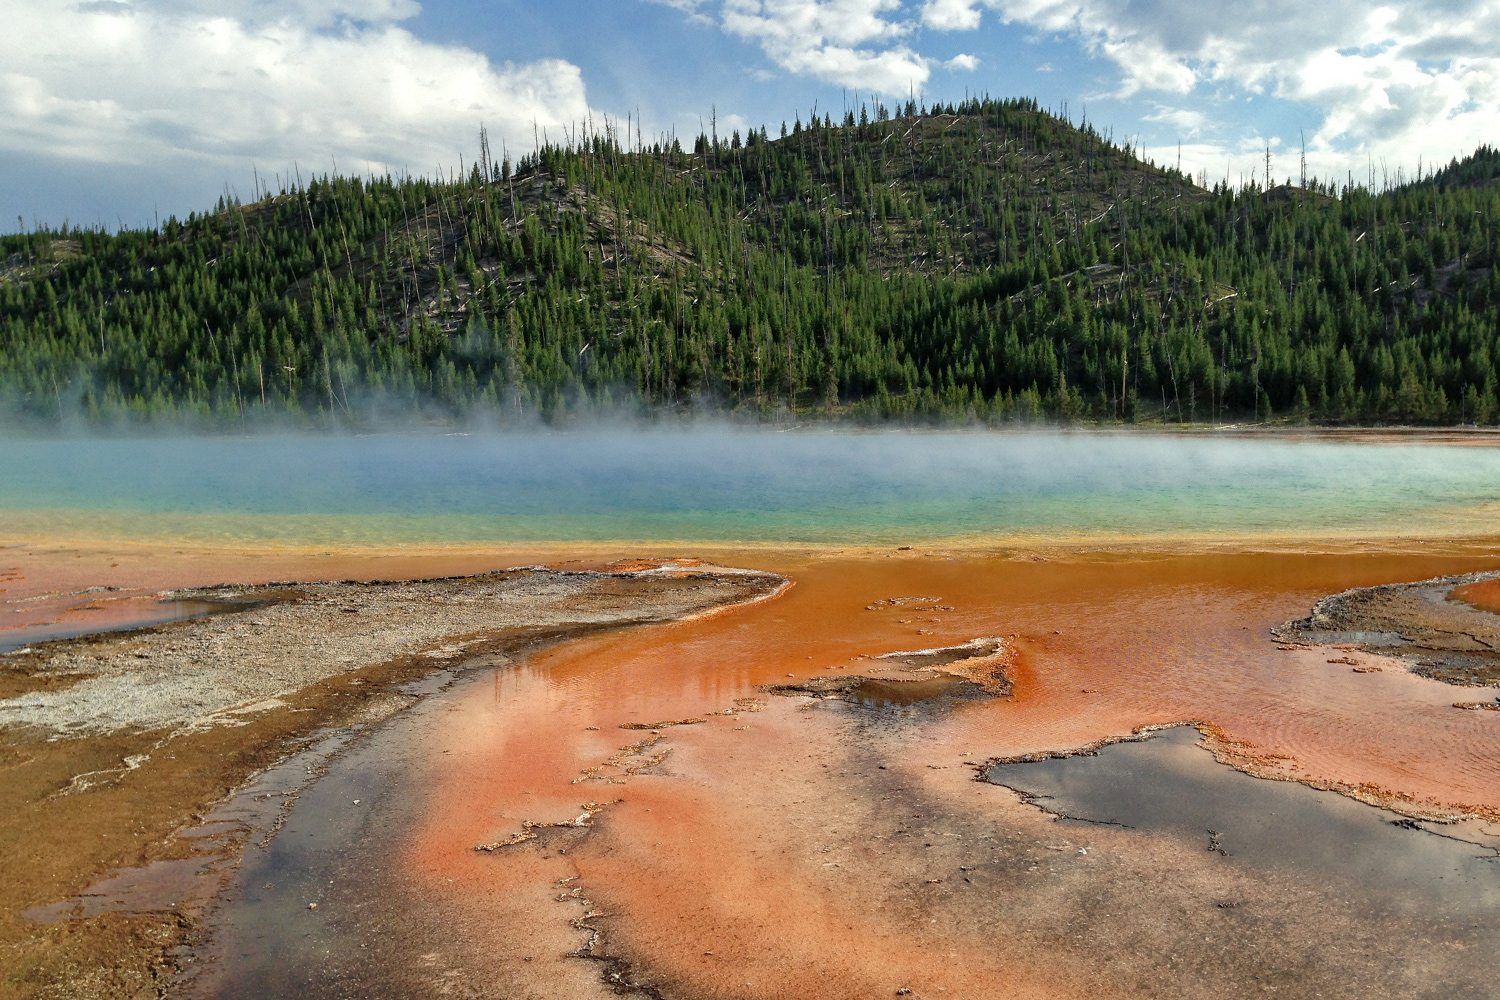 yellowstone national park singles News, events and specials from our blog more about the covered wagon ranch: the covered wagon ranch is a montana dude ranch, nestled in the heart of the gallatin national forest, just three miles north of yellowstone national park.